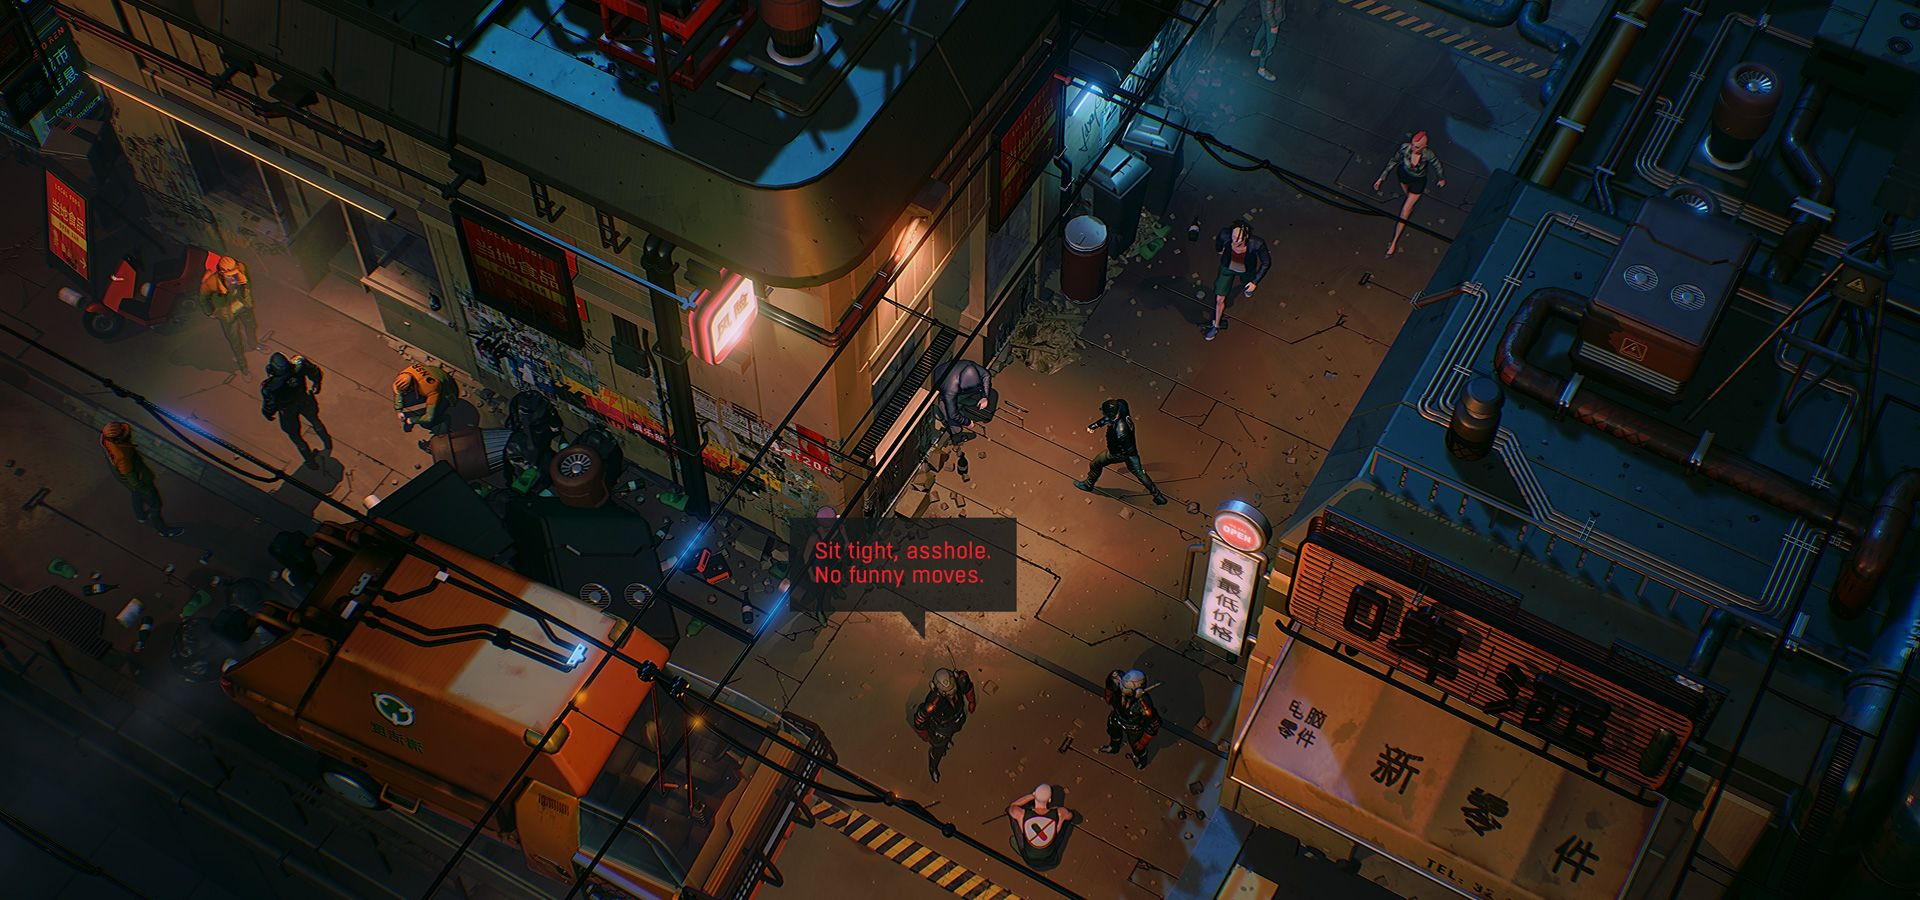 RUINER is set in a cyberpunk future in the year 2091